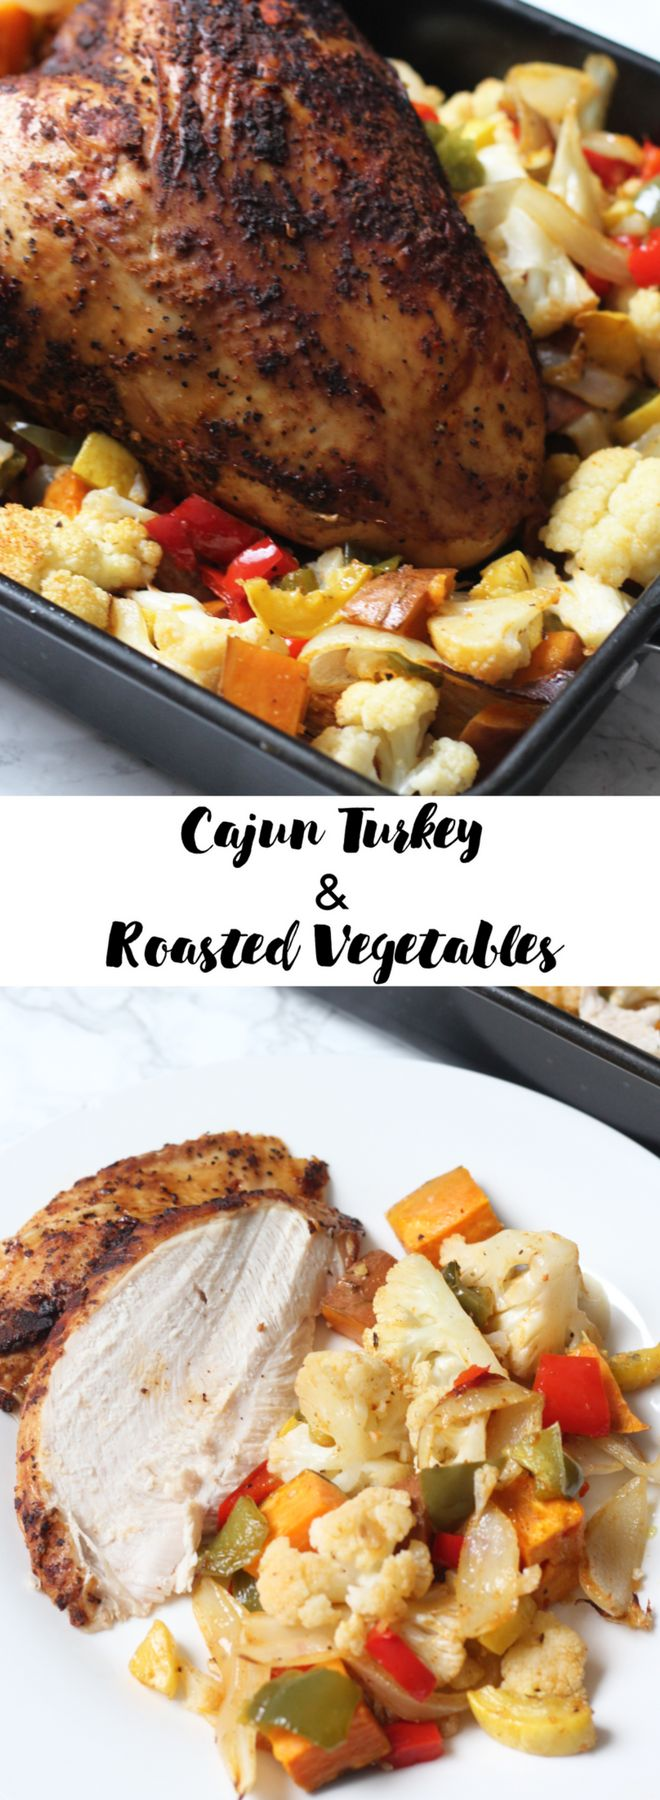 Spice up your holiday dinner this year with this Cajun Turkey & Roasted Vegetables | Lean, Clean, & Brie #jennieo #ad